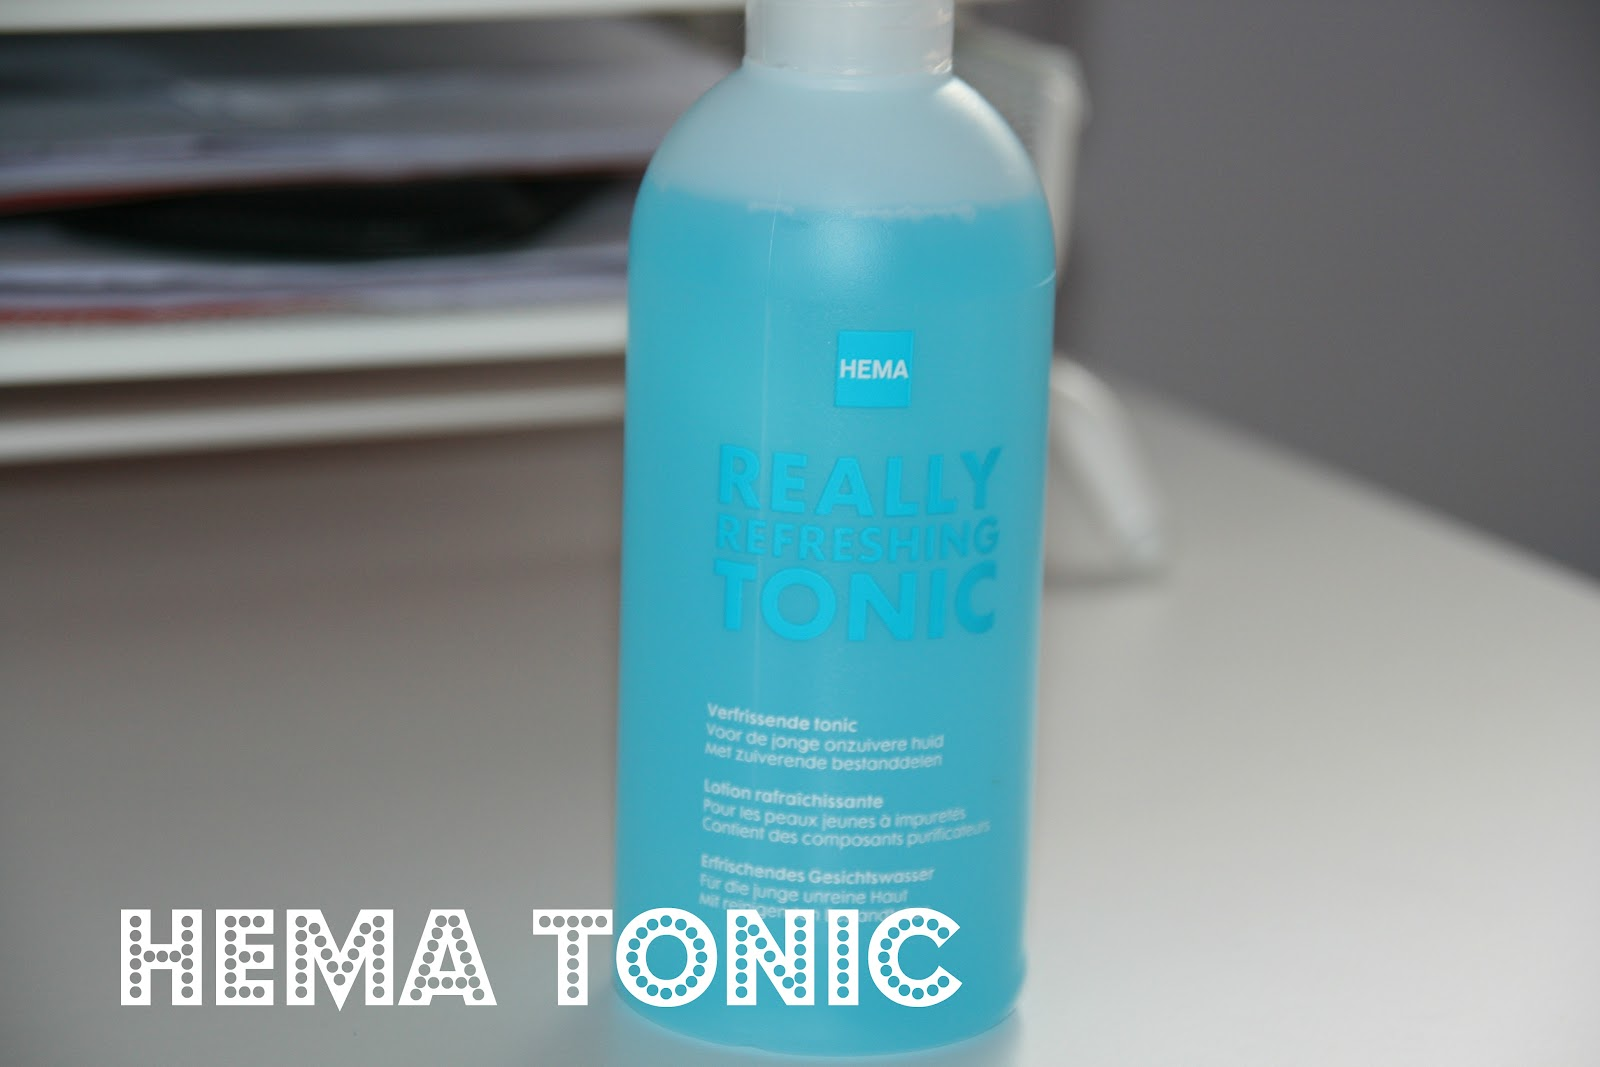 Soorten Tonic Hema Tonic 43 Cleasing Review Label16